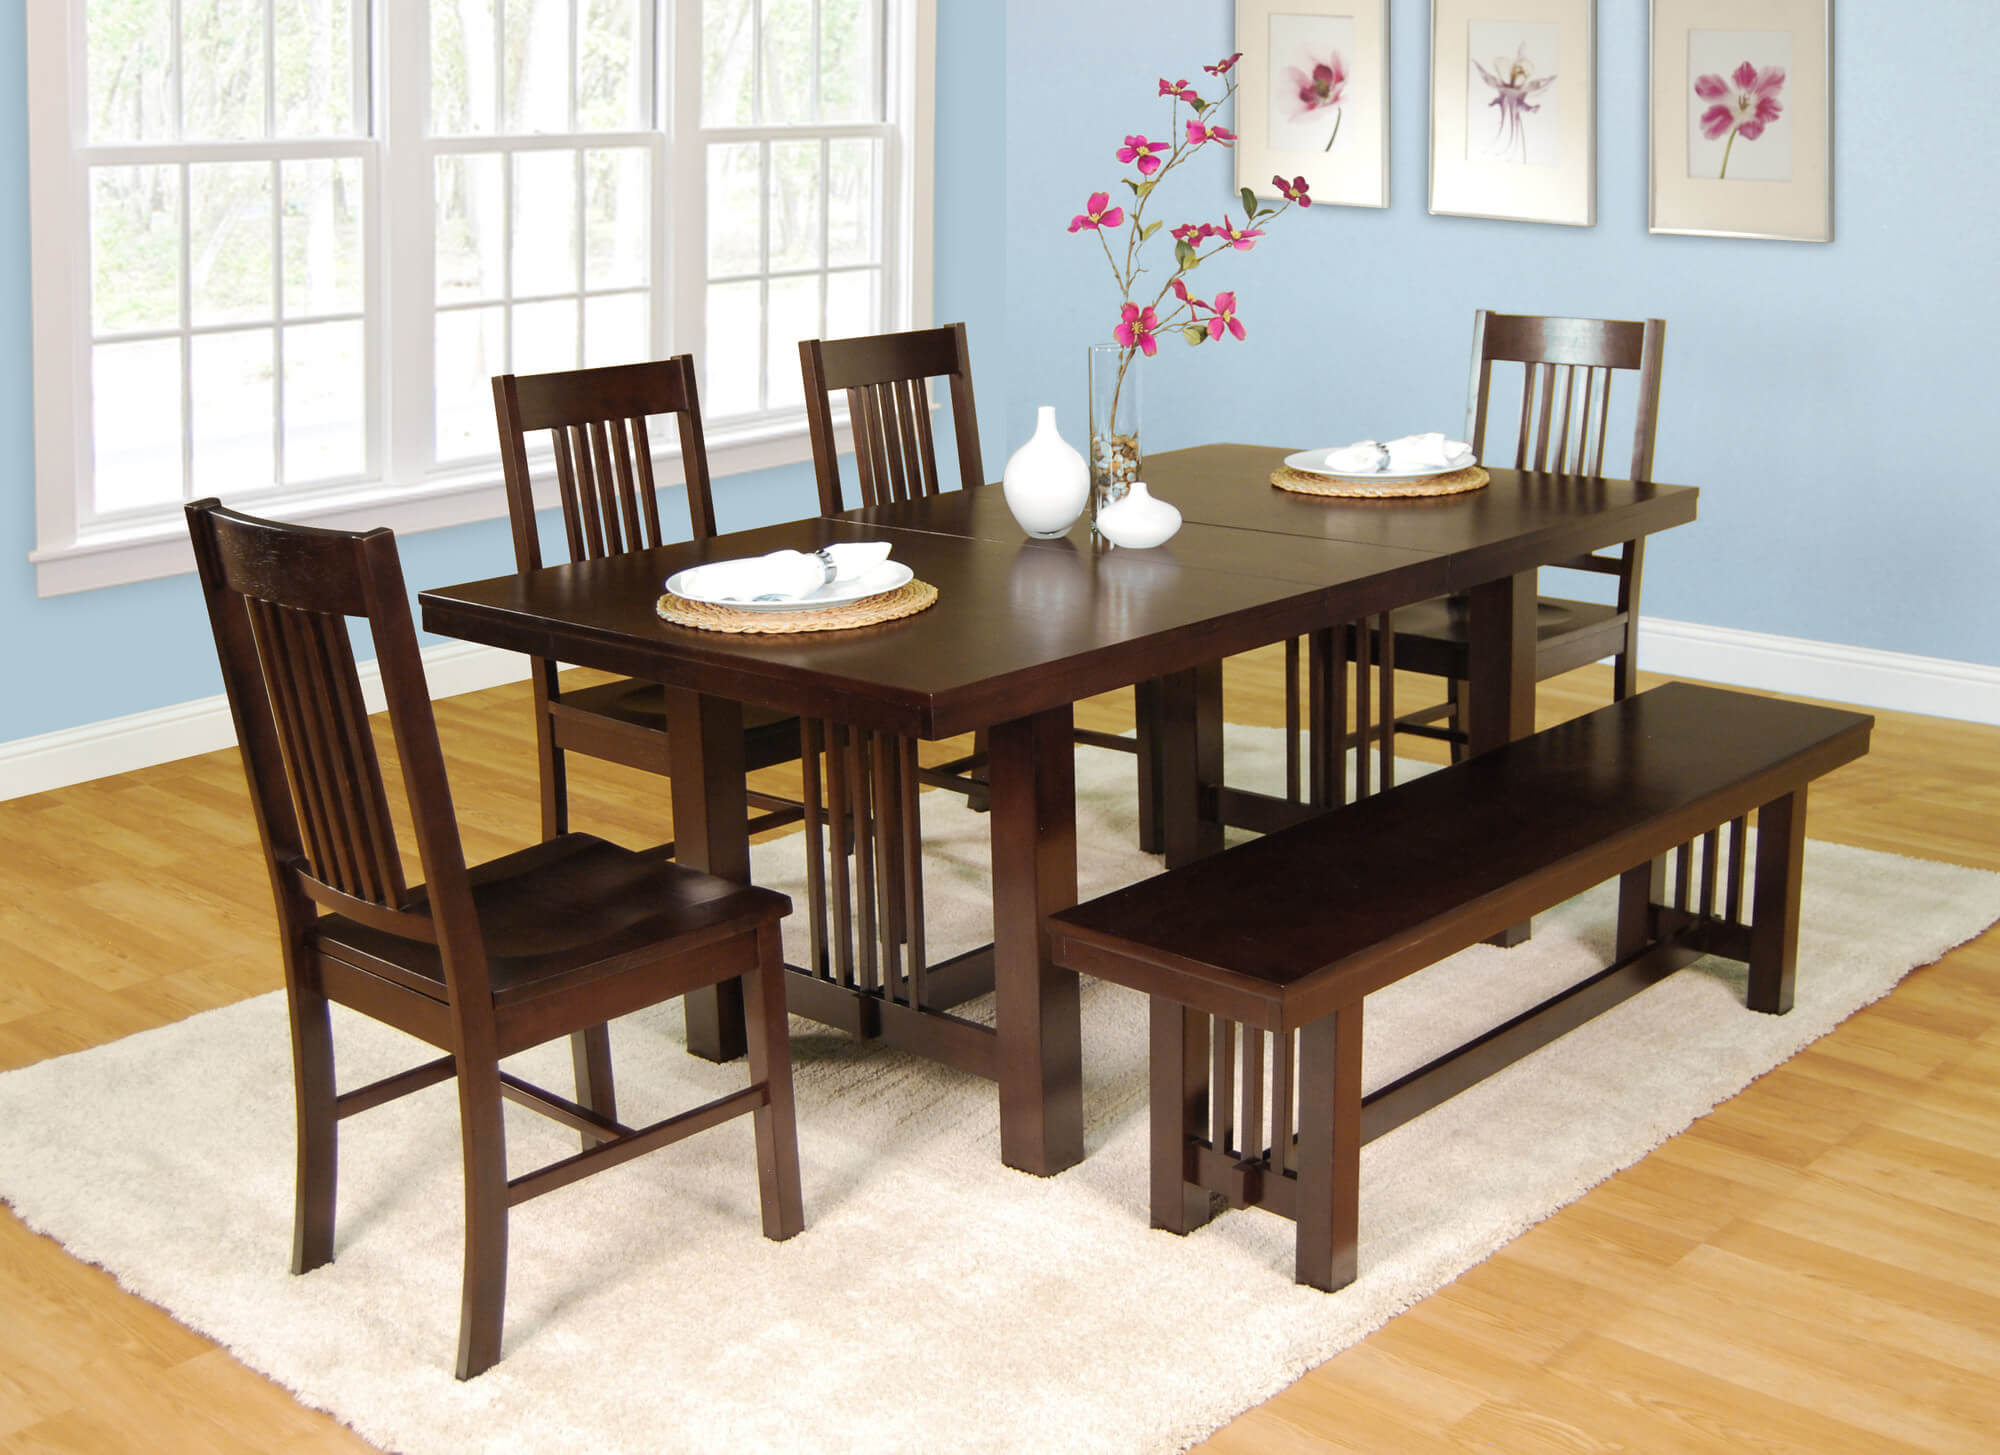 Hereu0027s A Very Solid Dining Set With Bench. Table Can Be Extended With A  Center Part 37